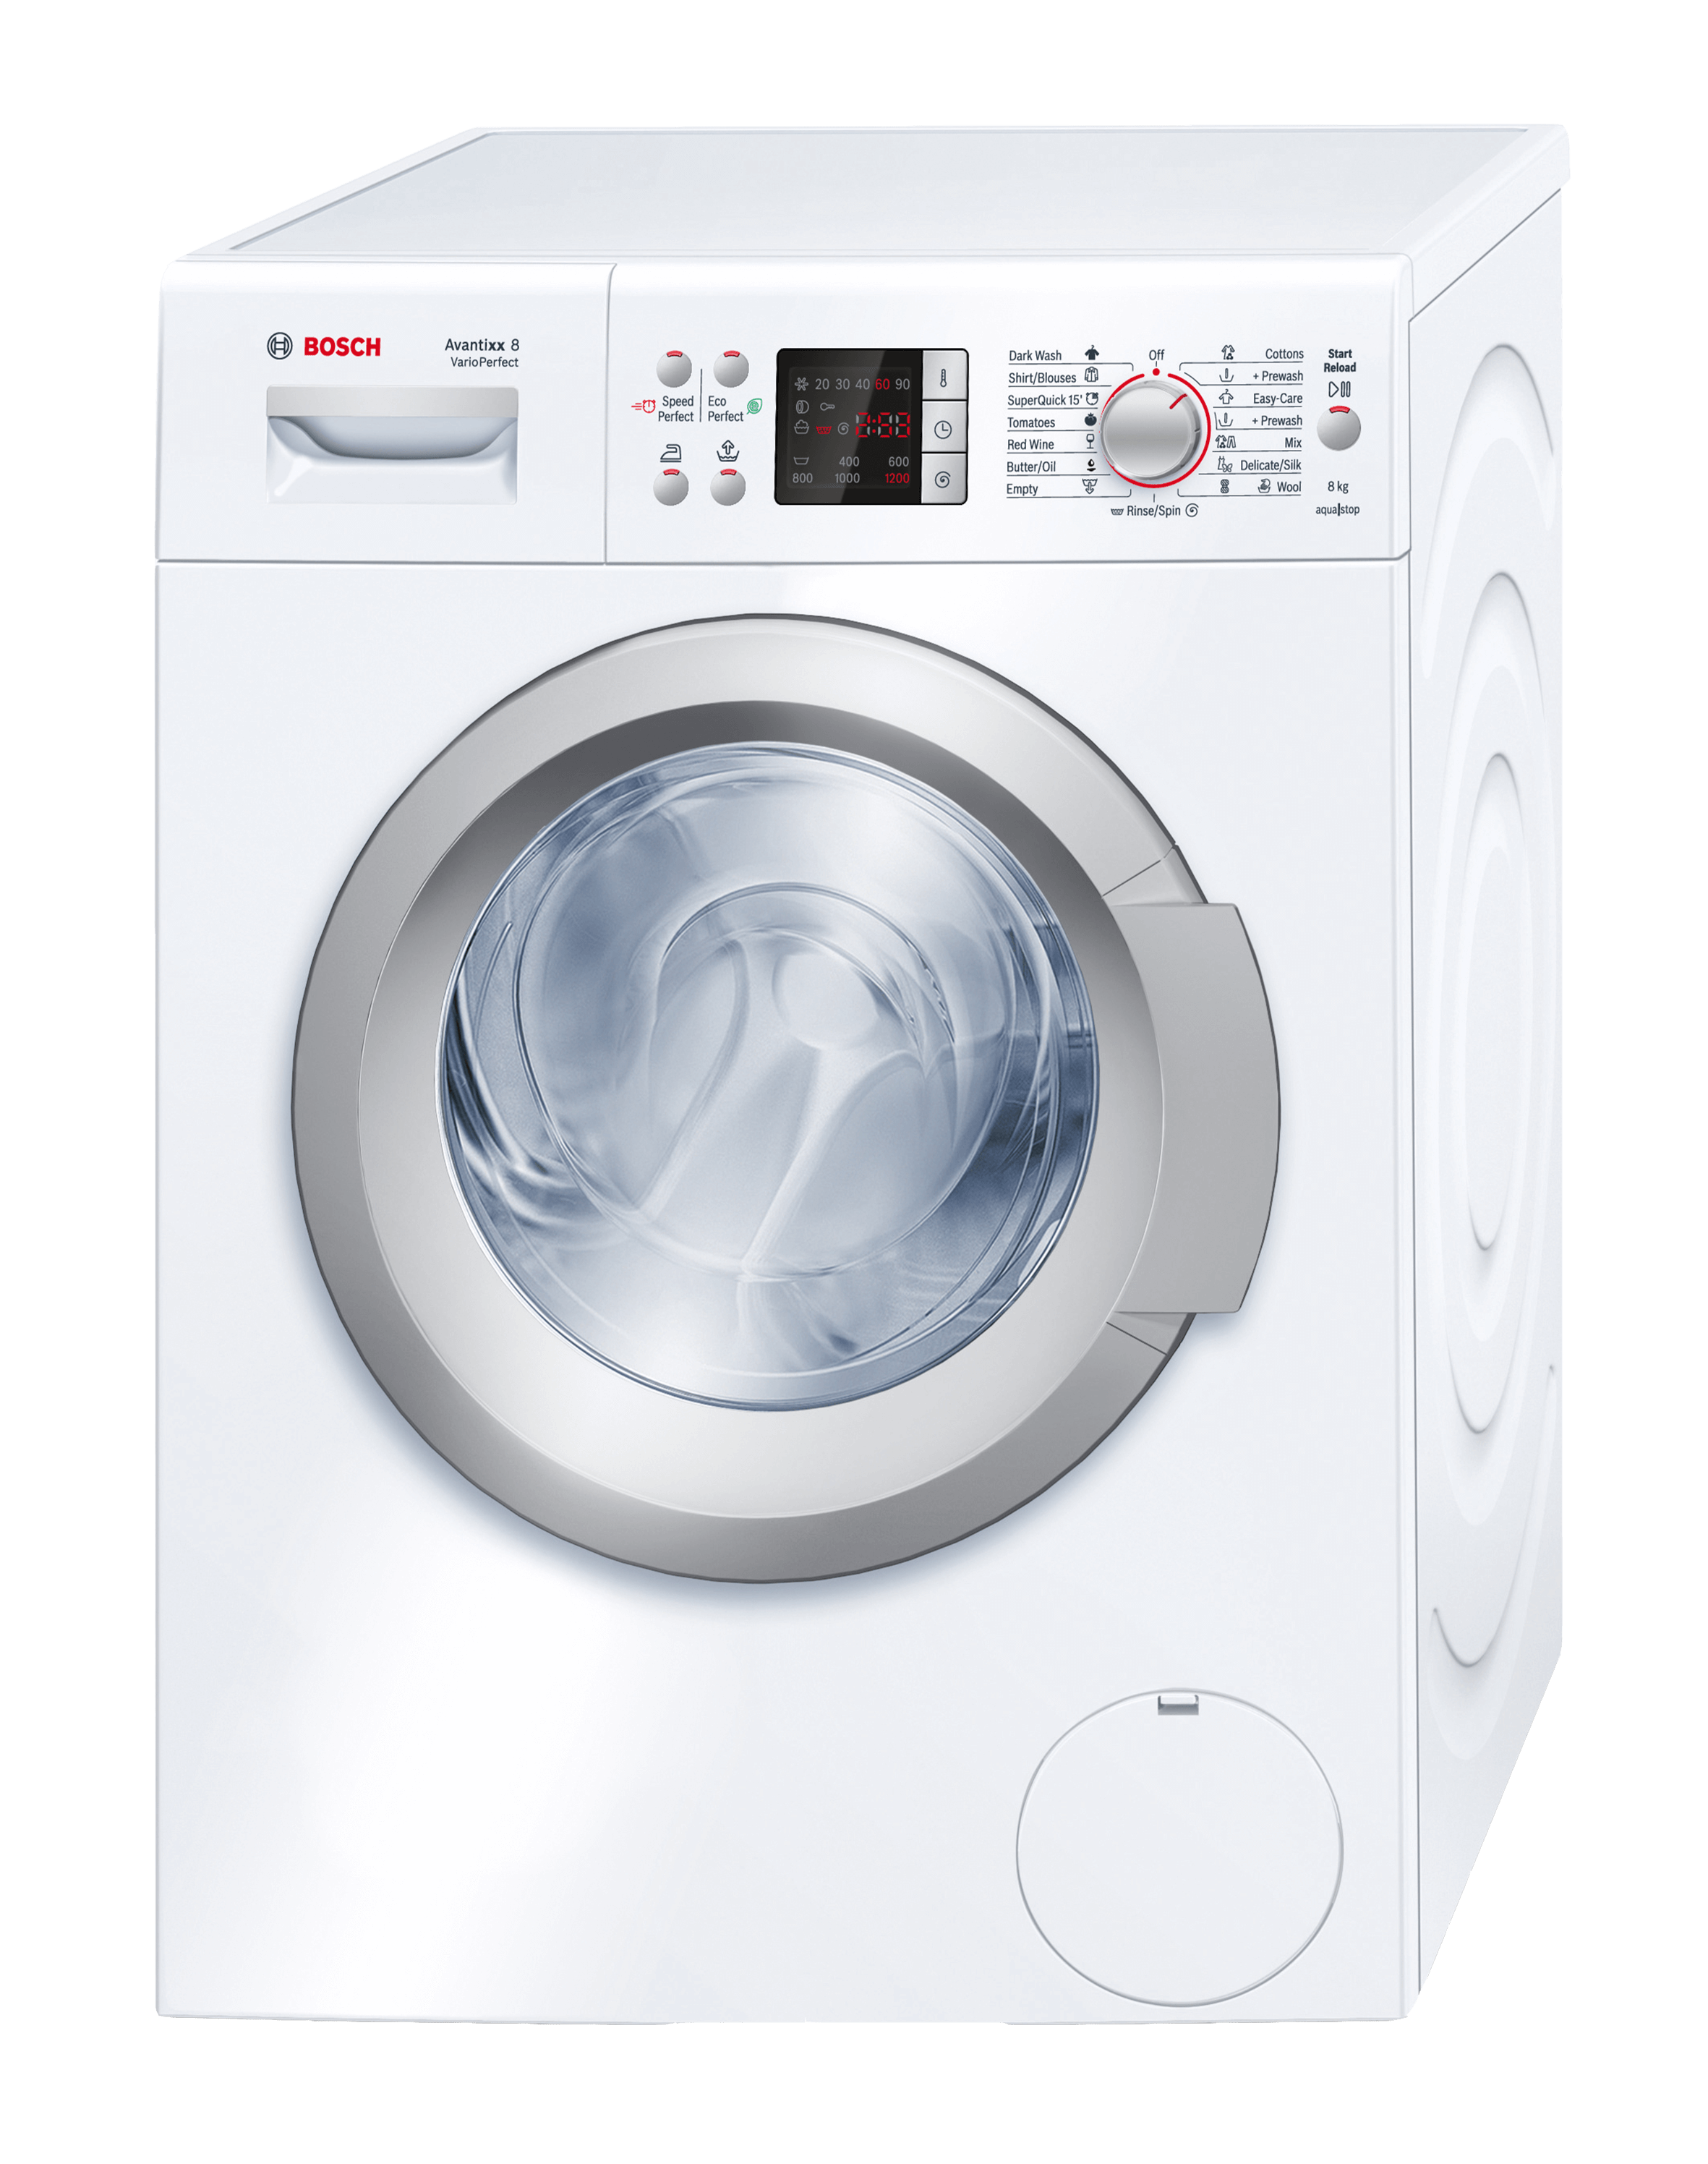 small front loader washing machine dimensions